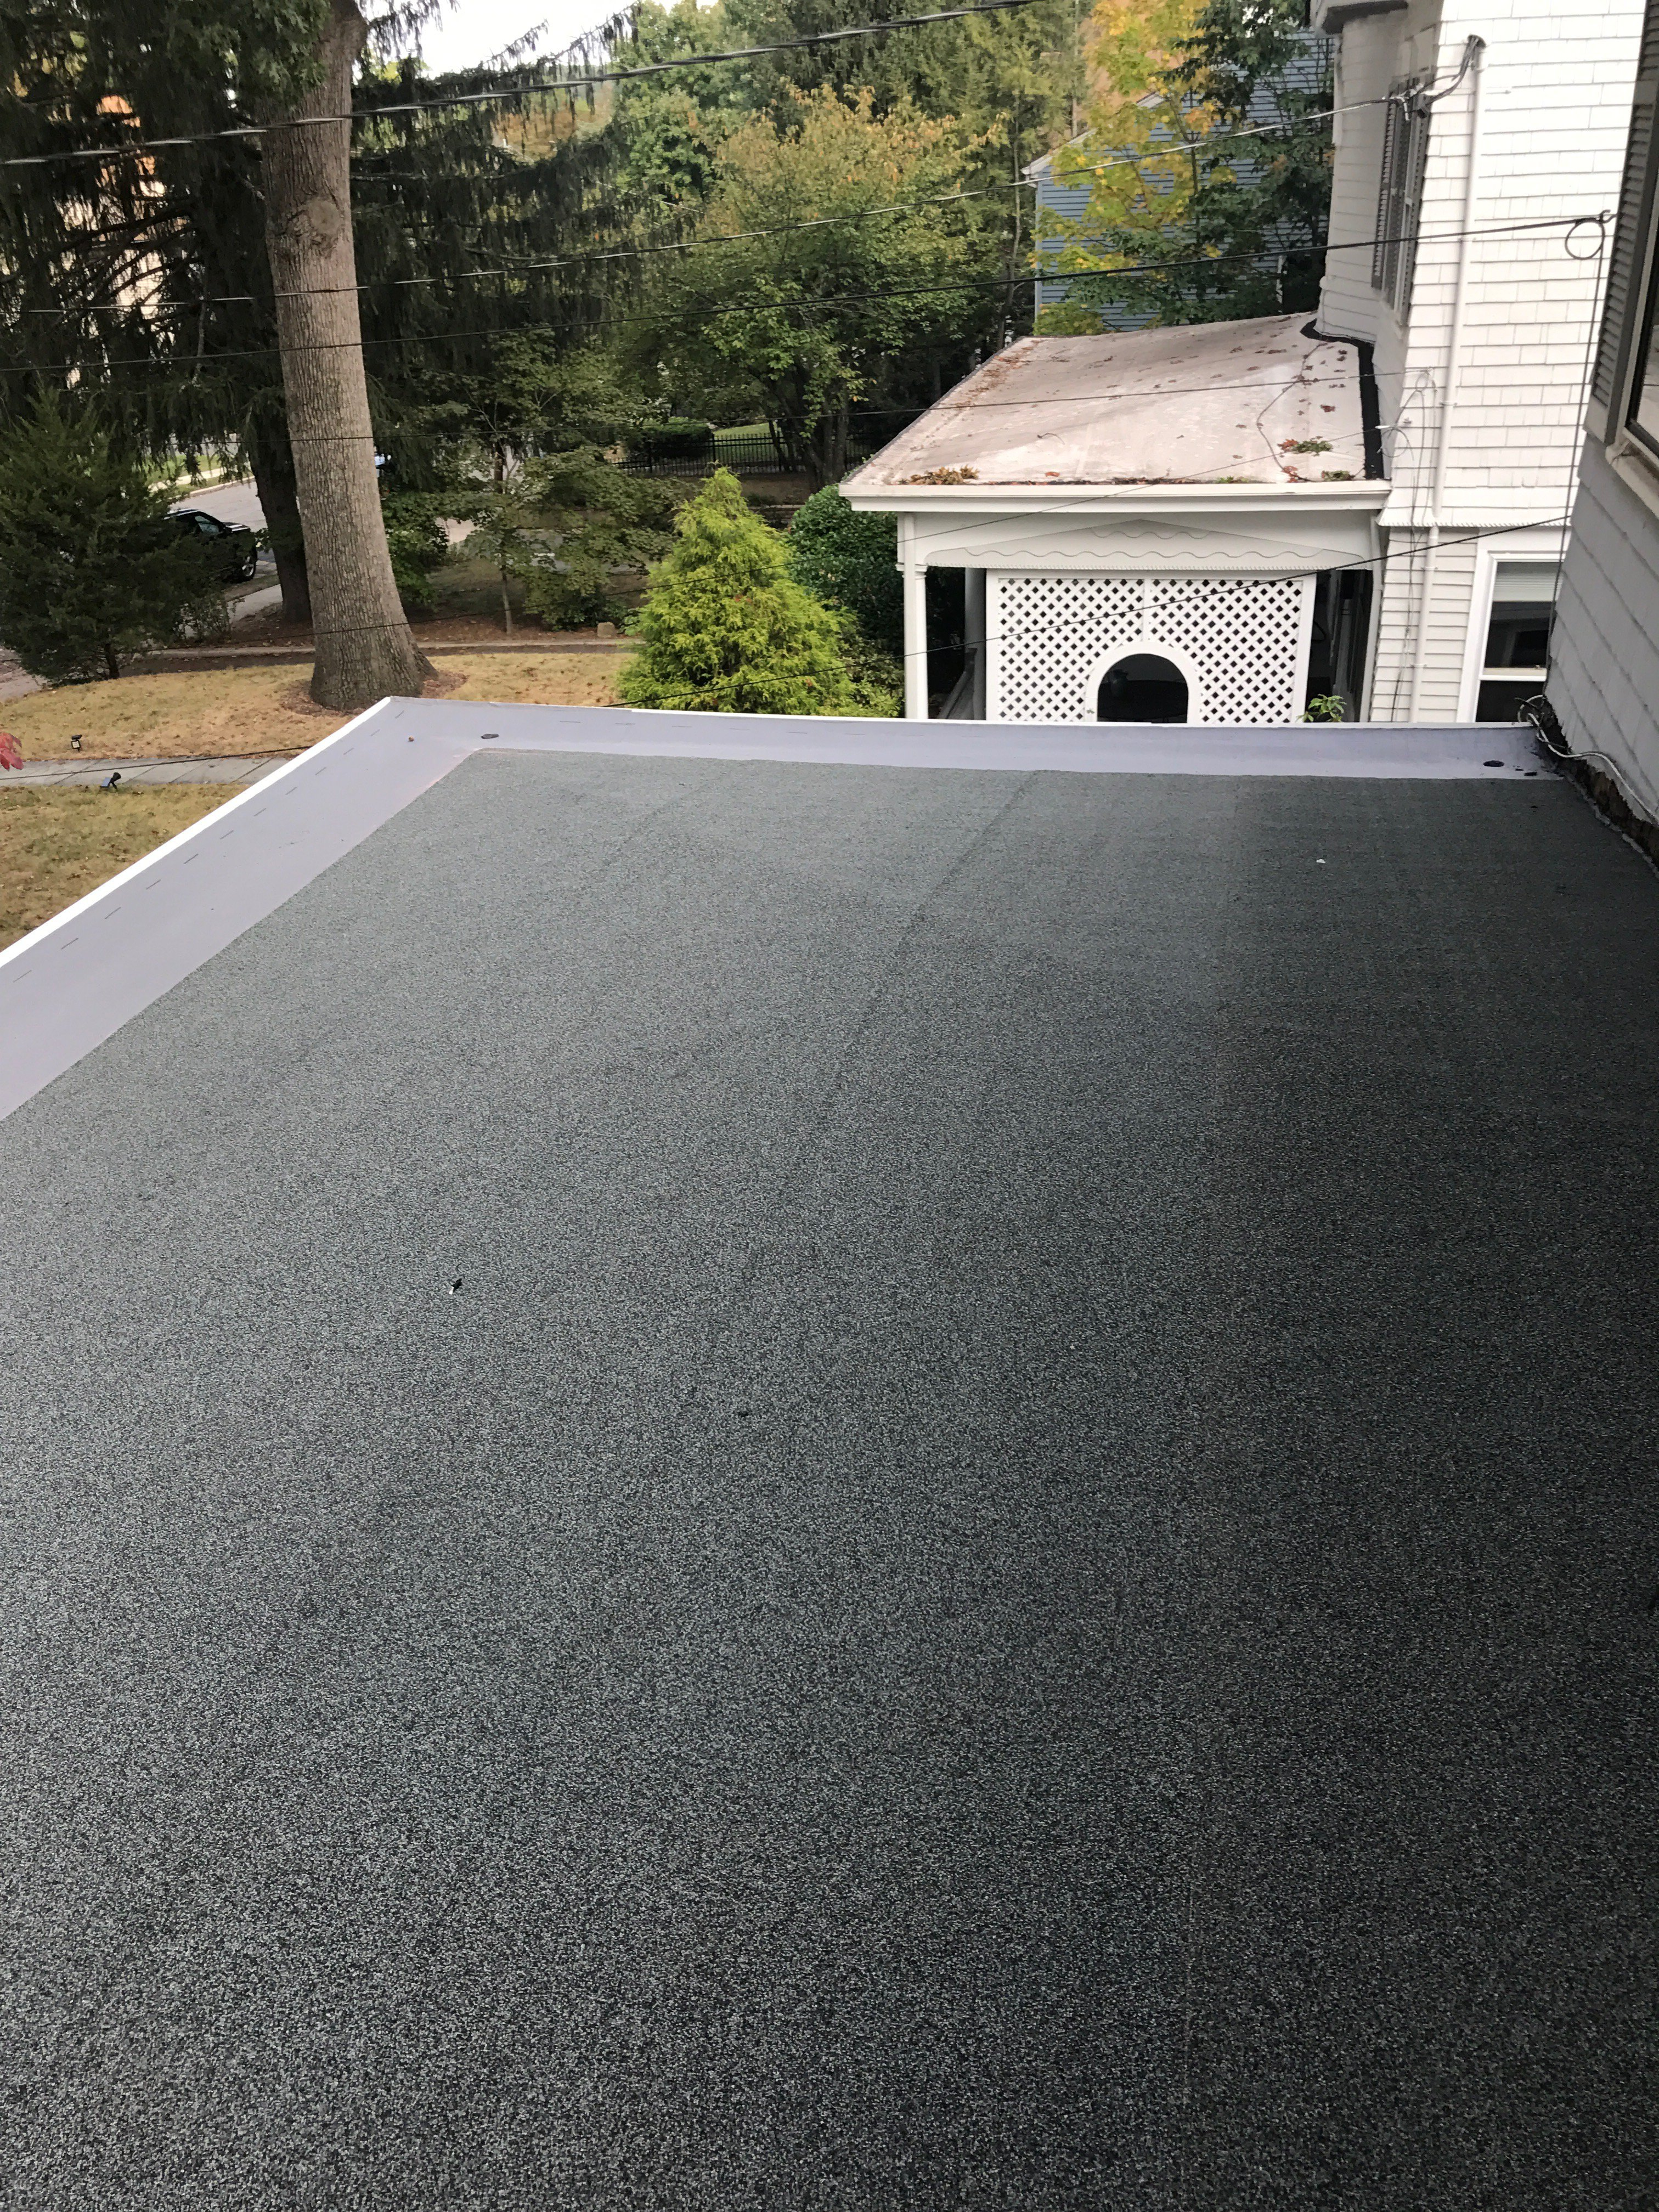 Flat Roofing Gallery Ridgewood Nj The Homestead Roofing Co